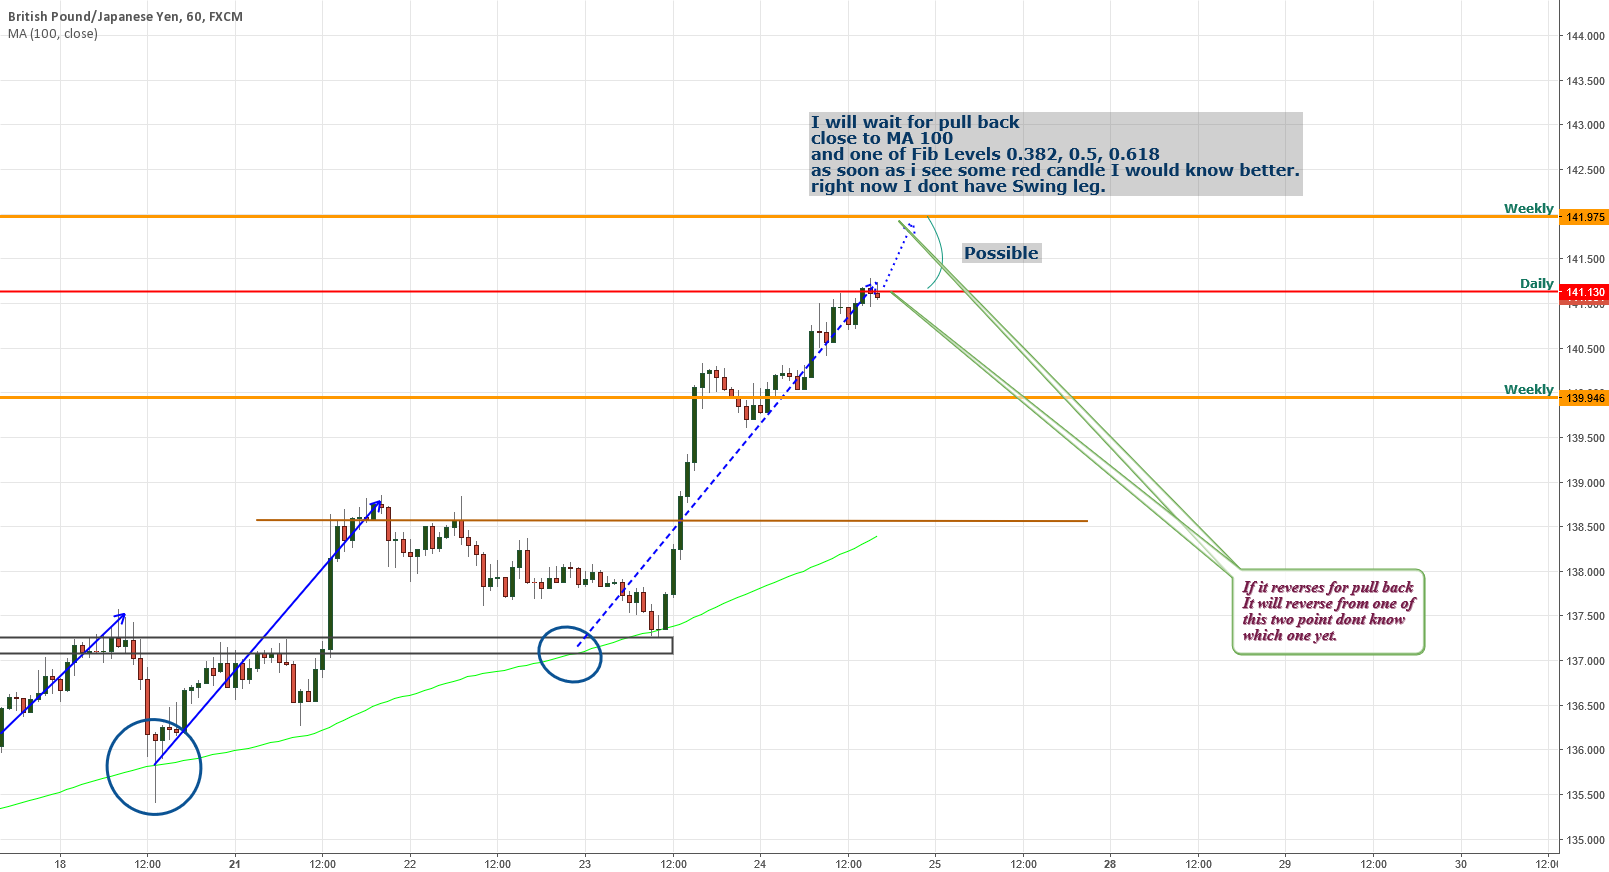 GBPJPY Will wait for pull back